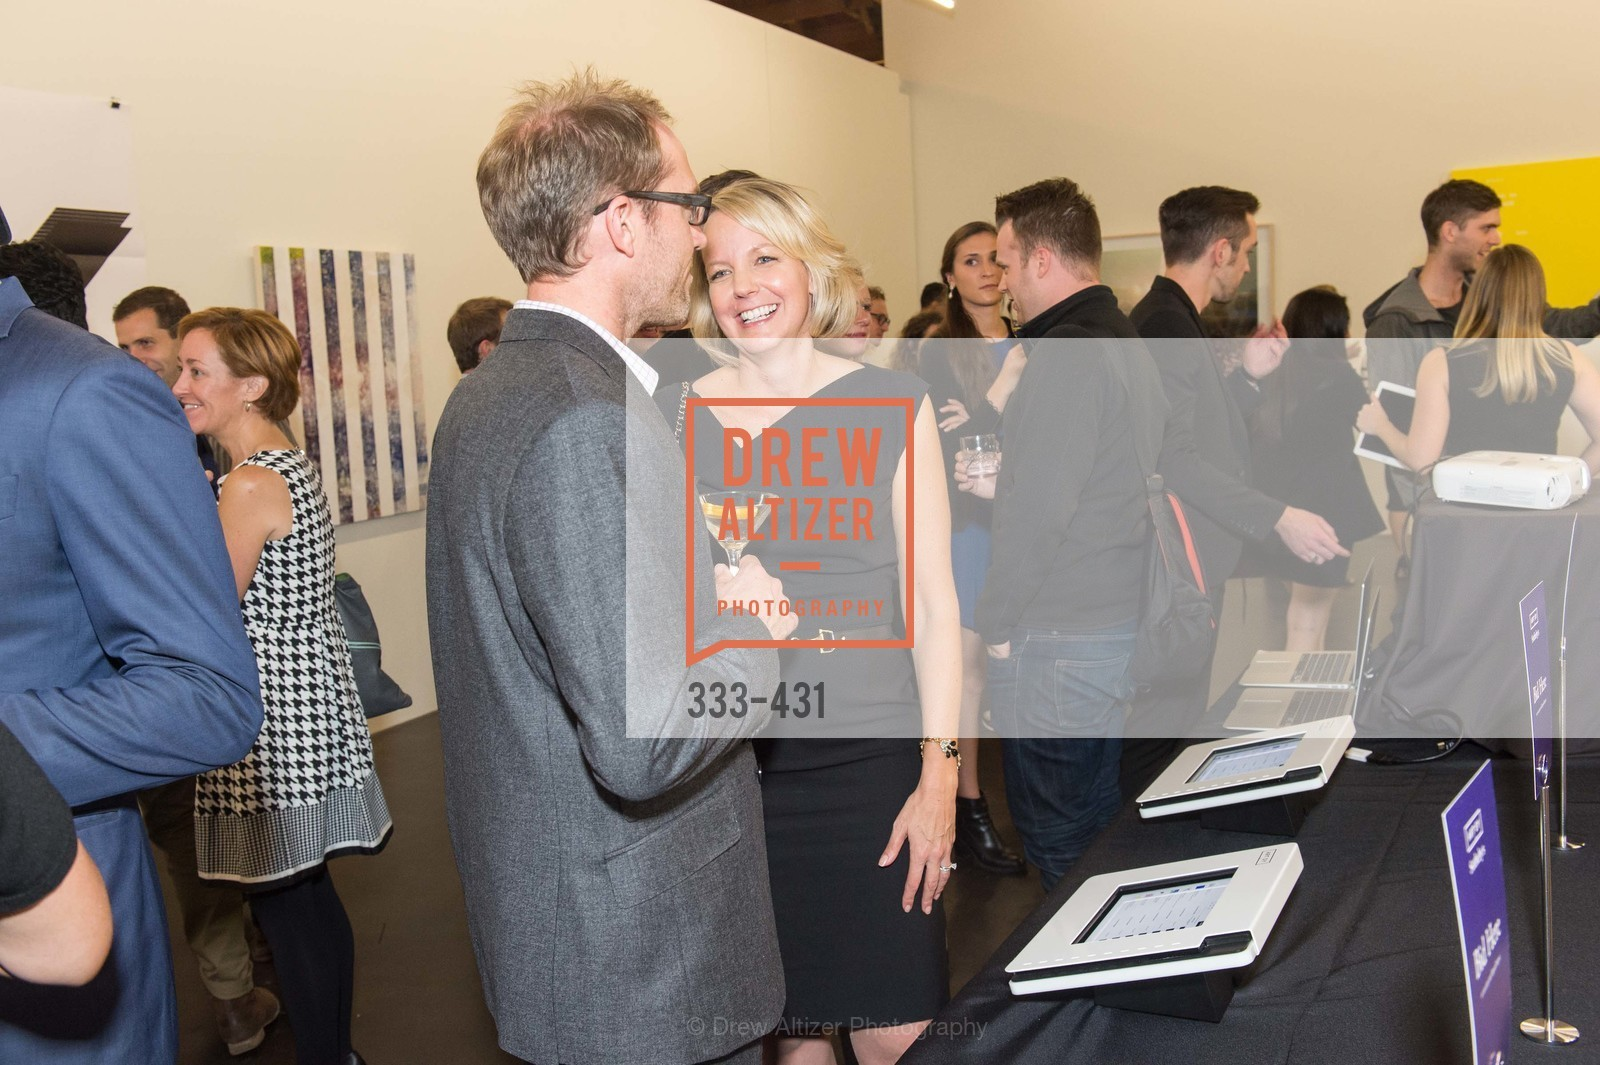 Tom Hertenstein, Holly Sherratt, Artsy + Sotheby's Closing Party, Fused. 1401 16th Street, October 30th, 2015,Drew Altizer, Drew Altizer Photography, full-service agency, private events, San Francisco photographer, photographer california